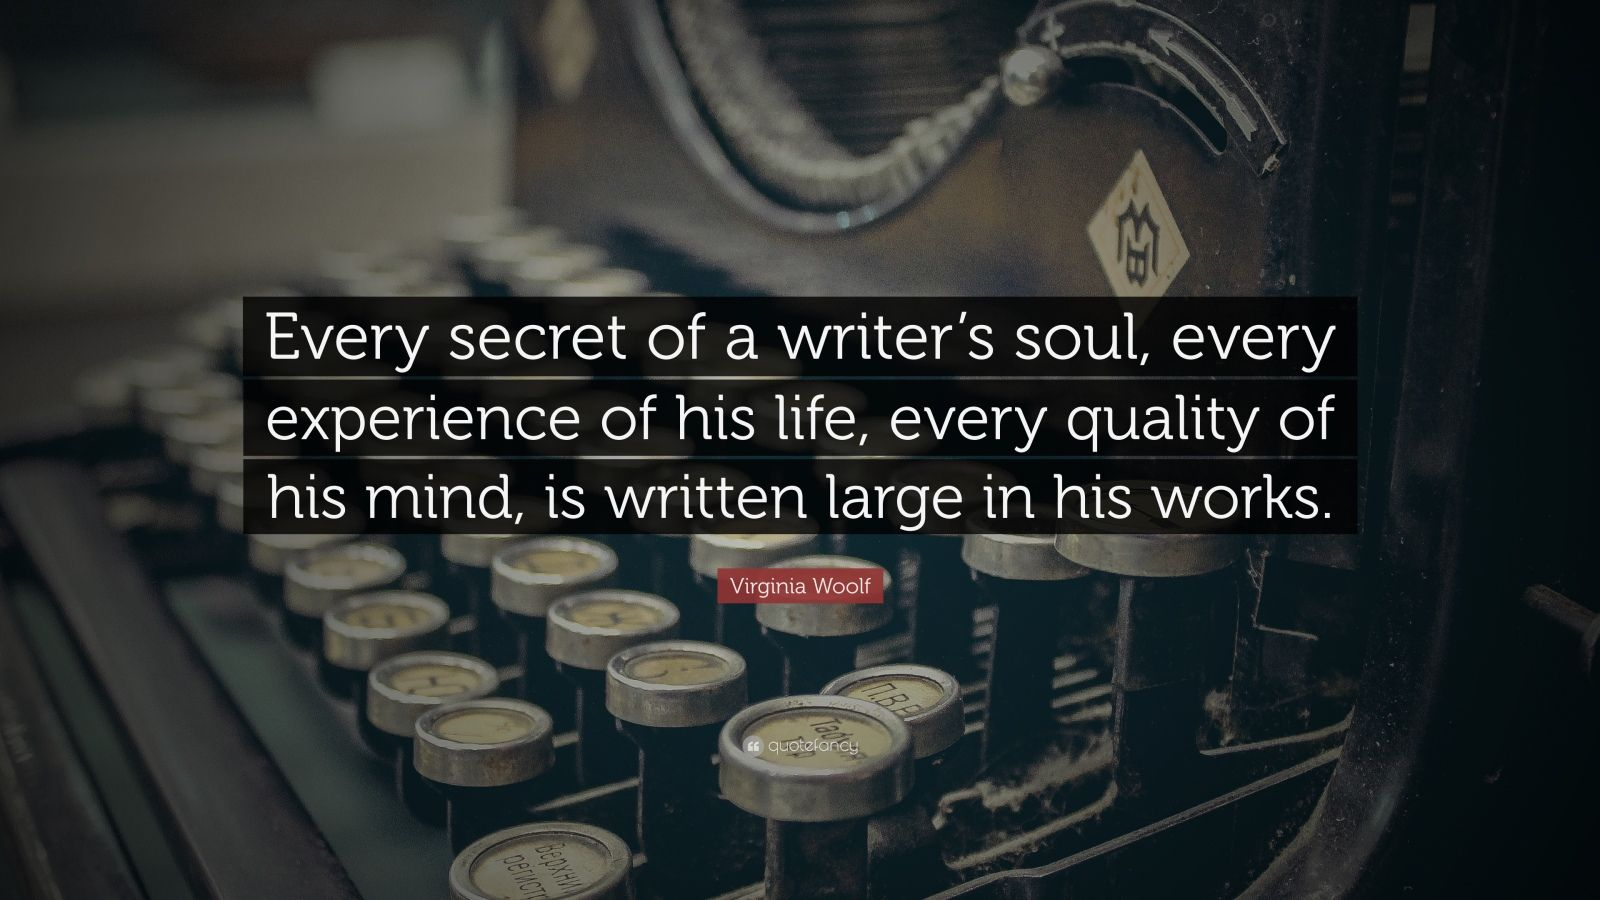 """Virginia Woolf Quote: """"Every secret of a writer's soul, every experience of his life, every quality of his mind, is written large in his works."""""""